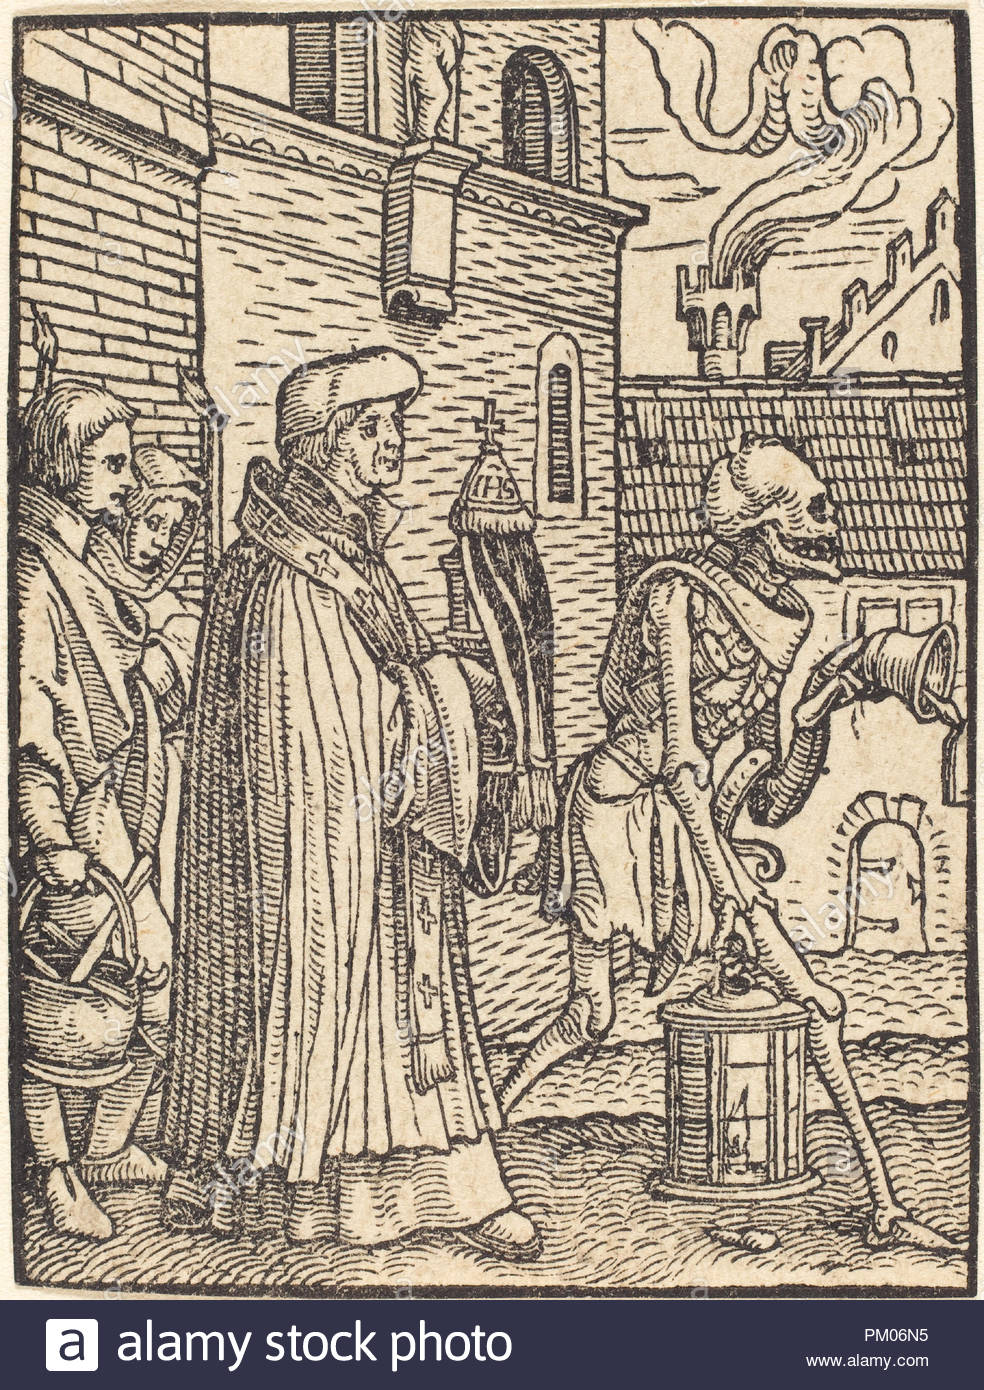 Parish Priest. Medium: woodcut. Museum: National Gallery of Art, Washington DC. Author: Hans Holbein the Younger. - Stock Image